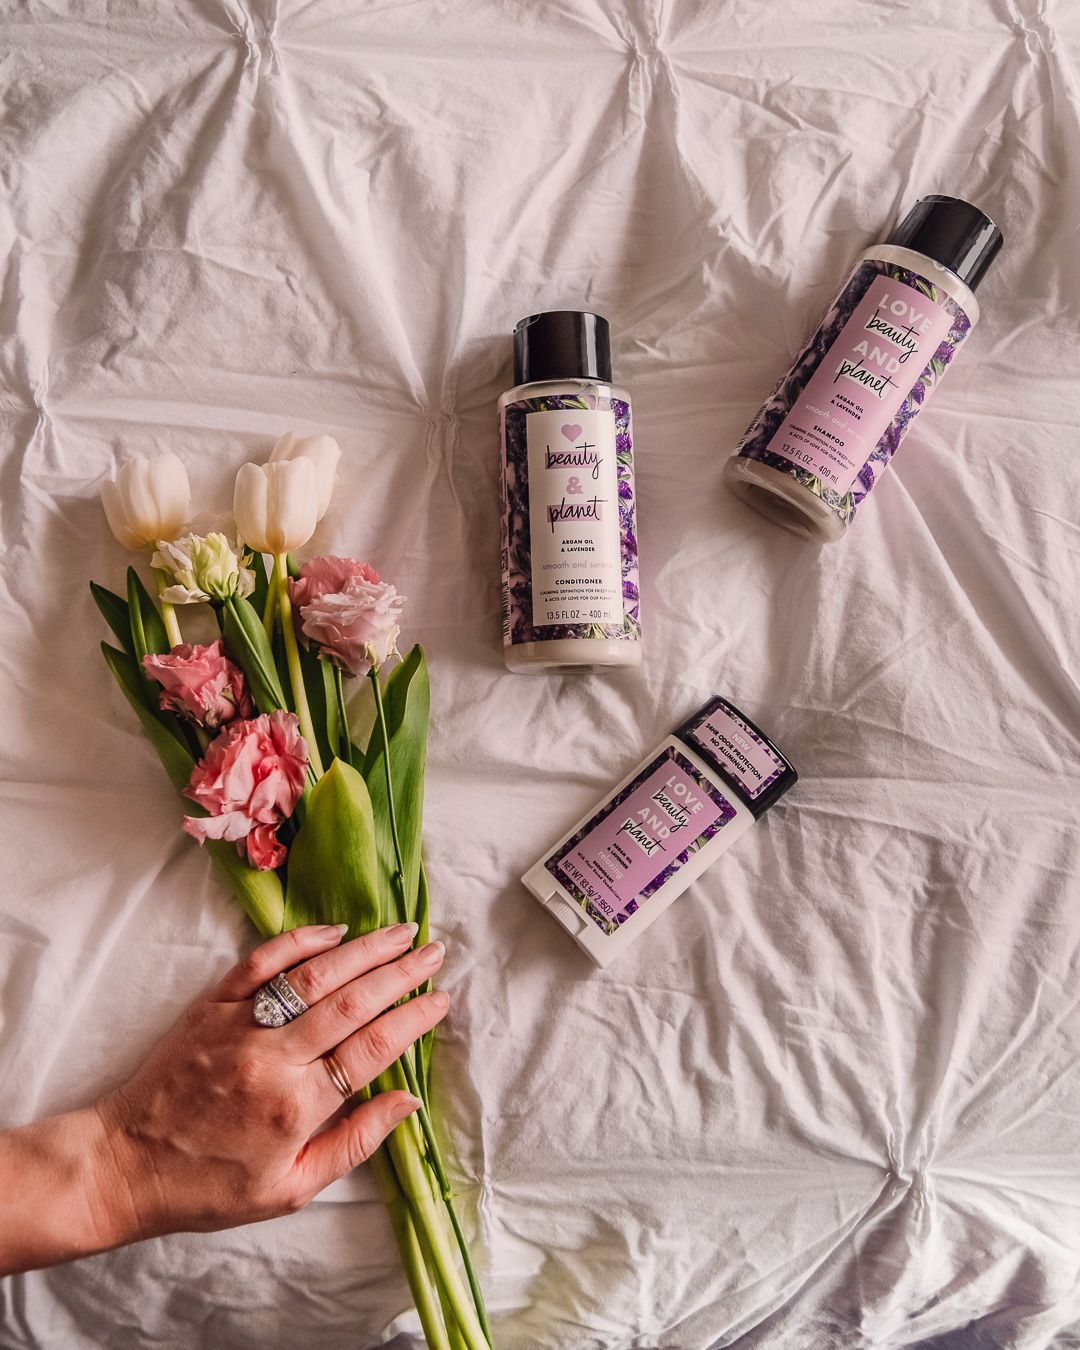 Eco Friendly Beauty With Love Beauty And Planet Deodorant Shampoo And Conditioner In Lavender And Arga Eco Friendly Beauty Beauty Planet How To Grow Eyebrows